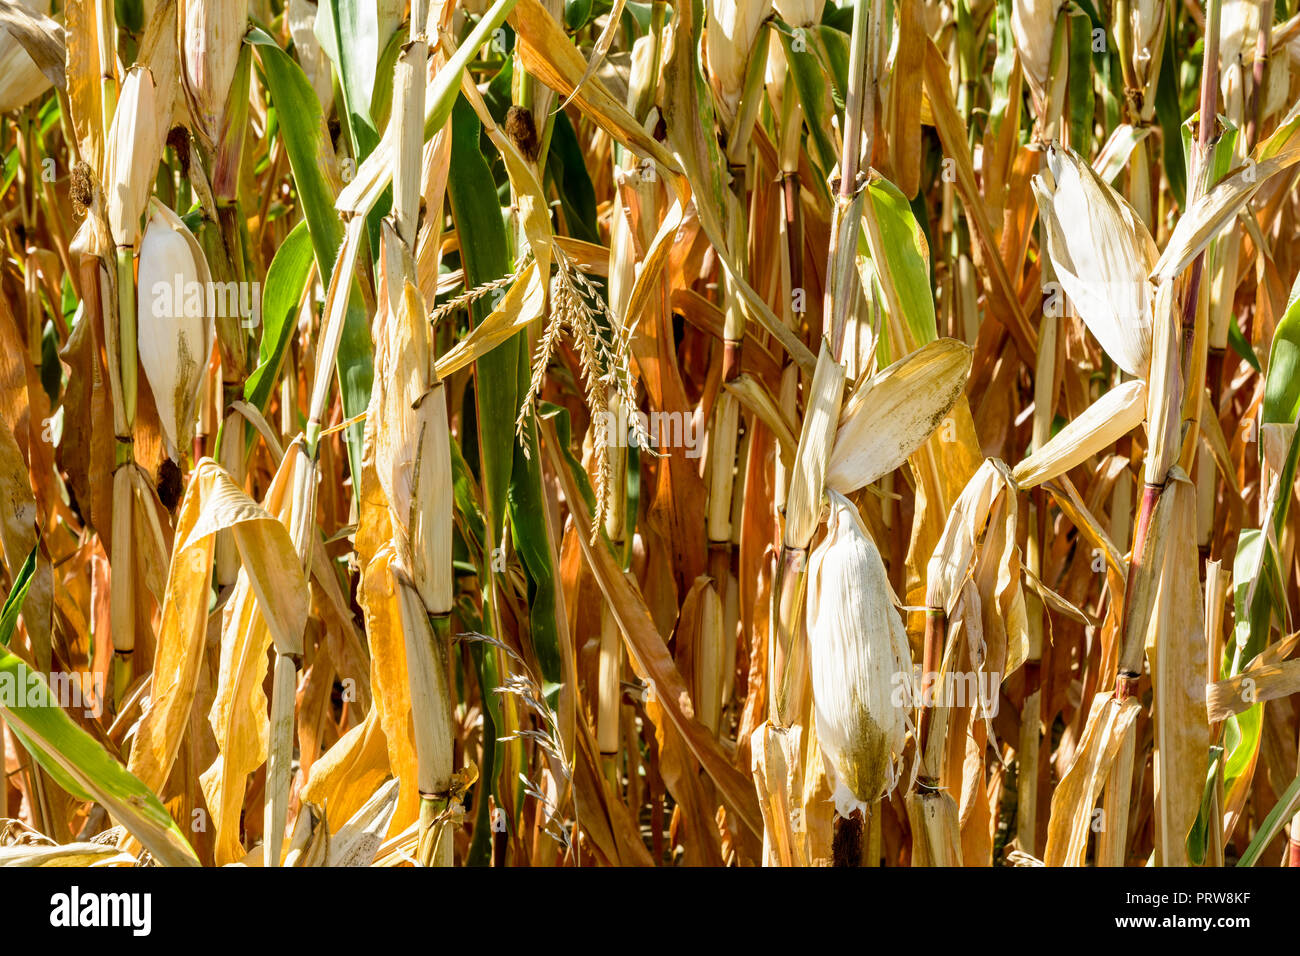 Corn crop suffering from drought. Close-up view of dry ears of corn in a field affected by drought during a hot, dry summer in the french countryside. - Stock Image